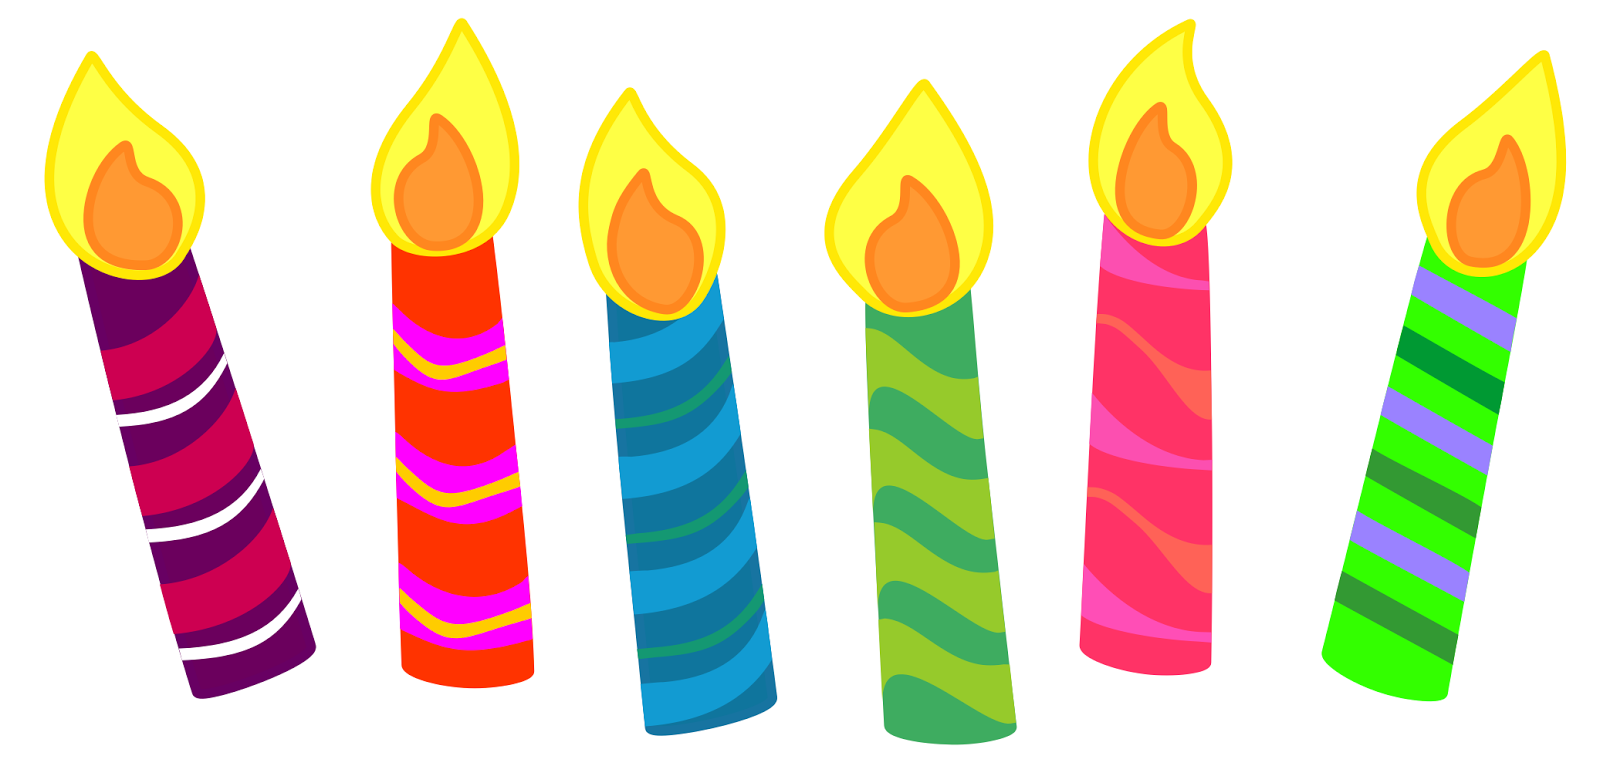 Pastry clipart candle Images free clipart Clipartix art